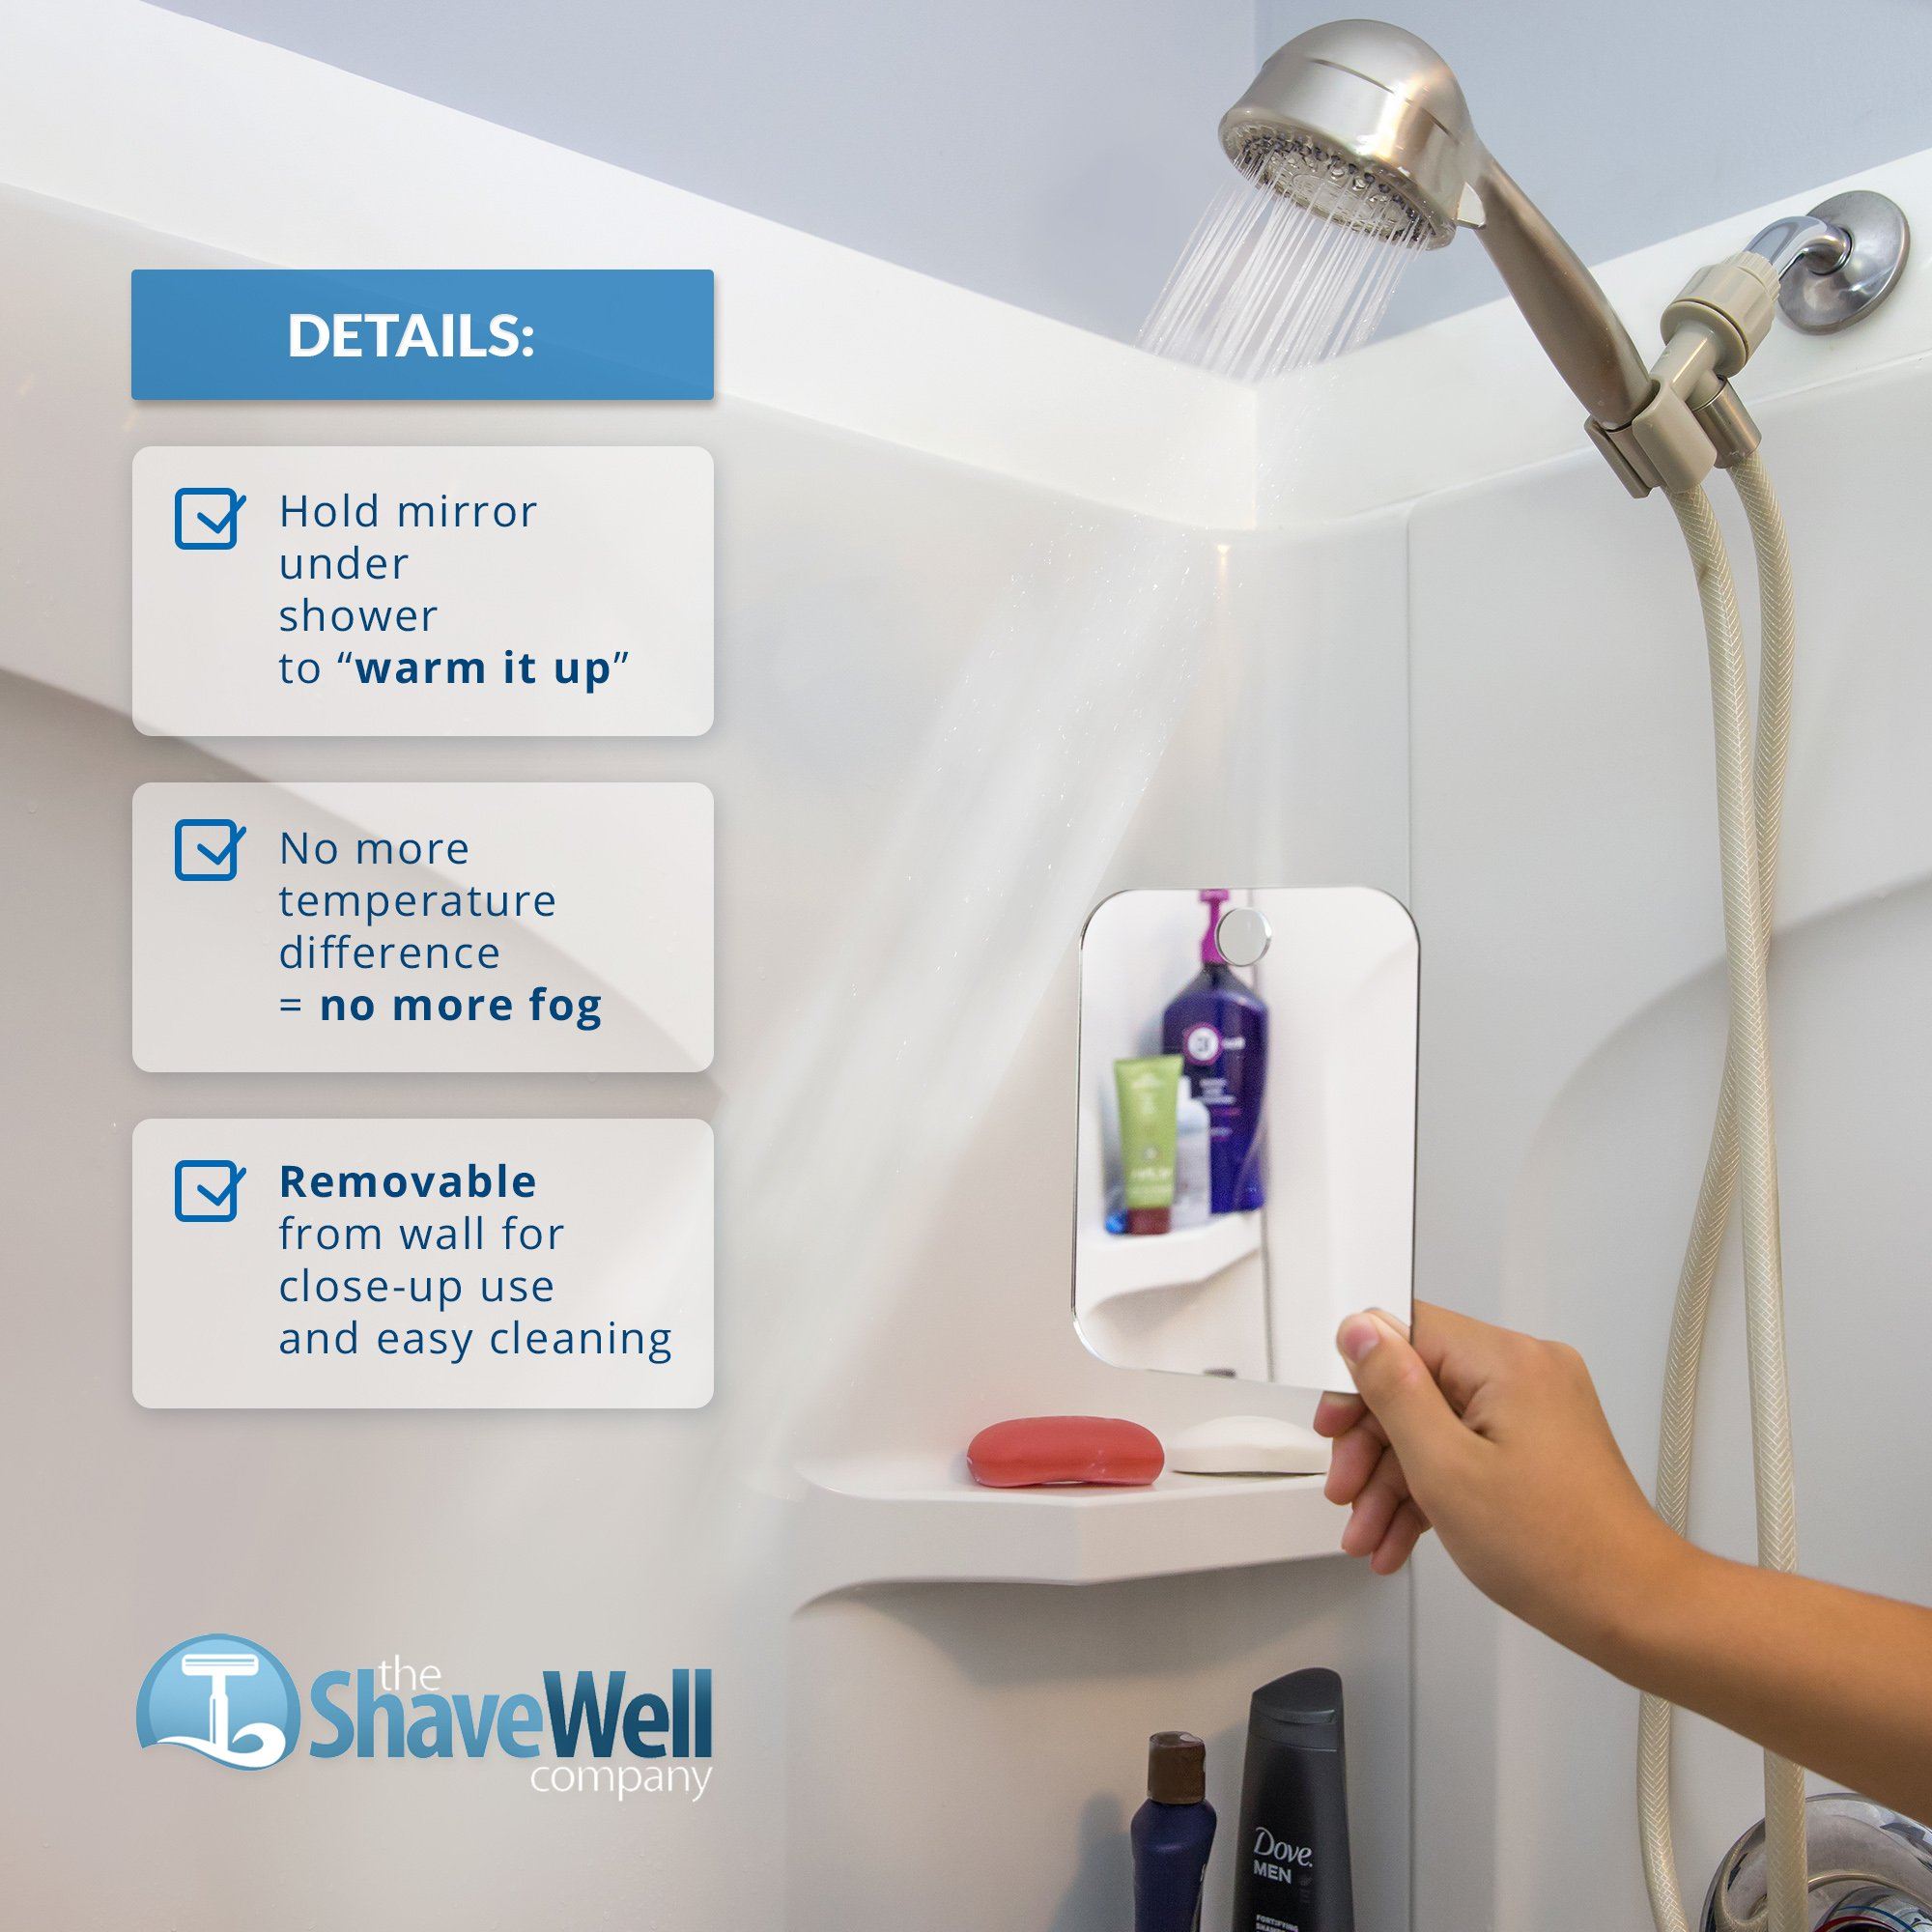 Deluxe Shave Well Fog-free Shower Mirror - Made in the USA - 33% larger than the Original Shave Well Anti-Fog Shower Mirror by The Shave Well Company (Image #2)